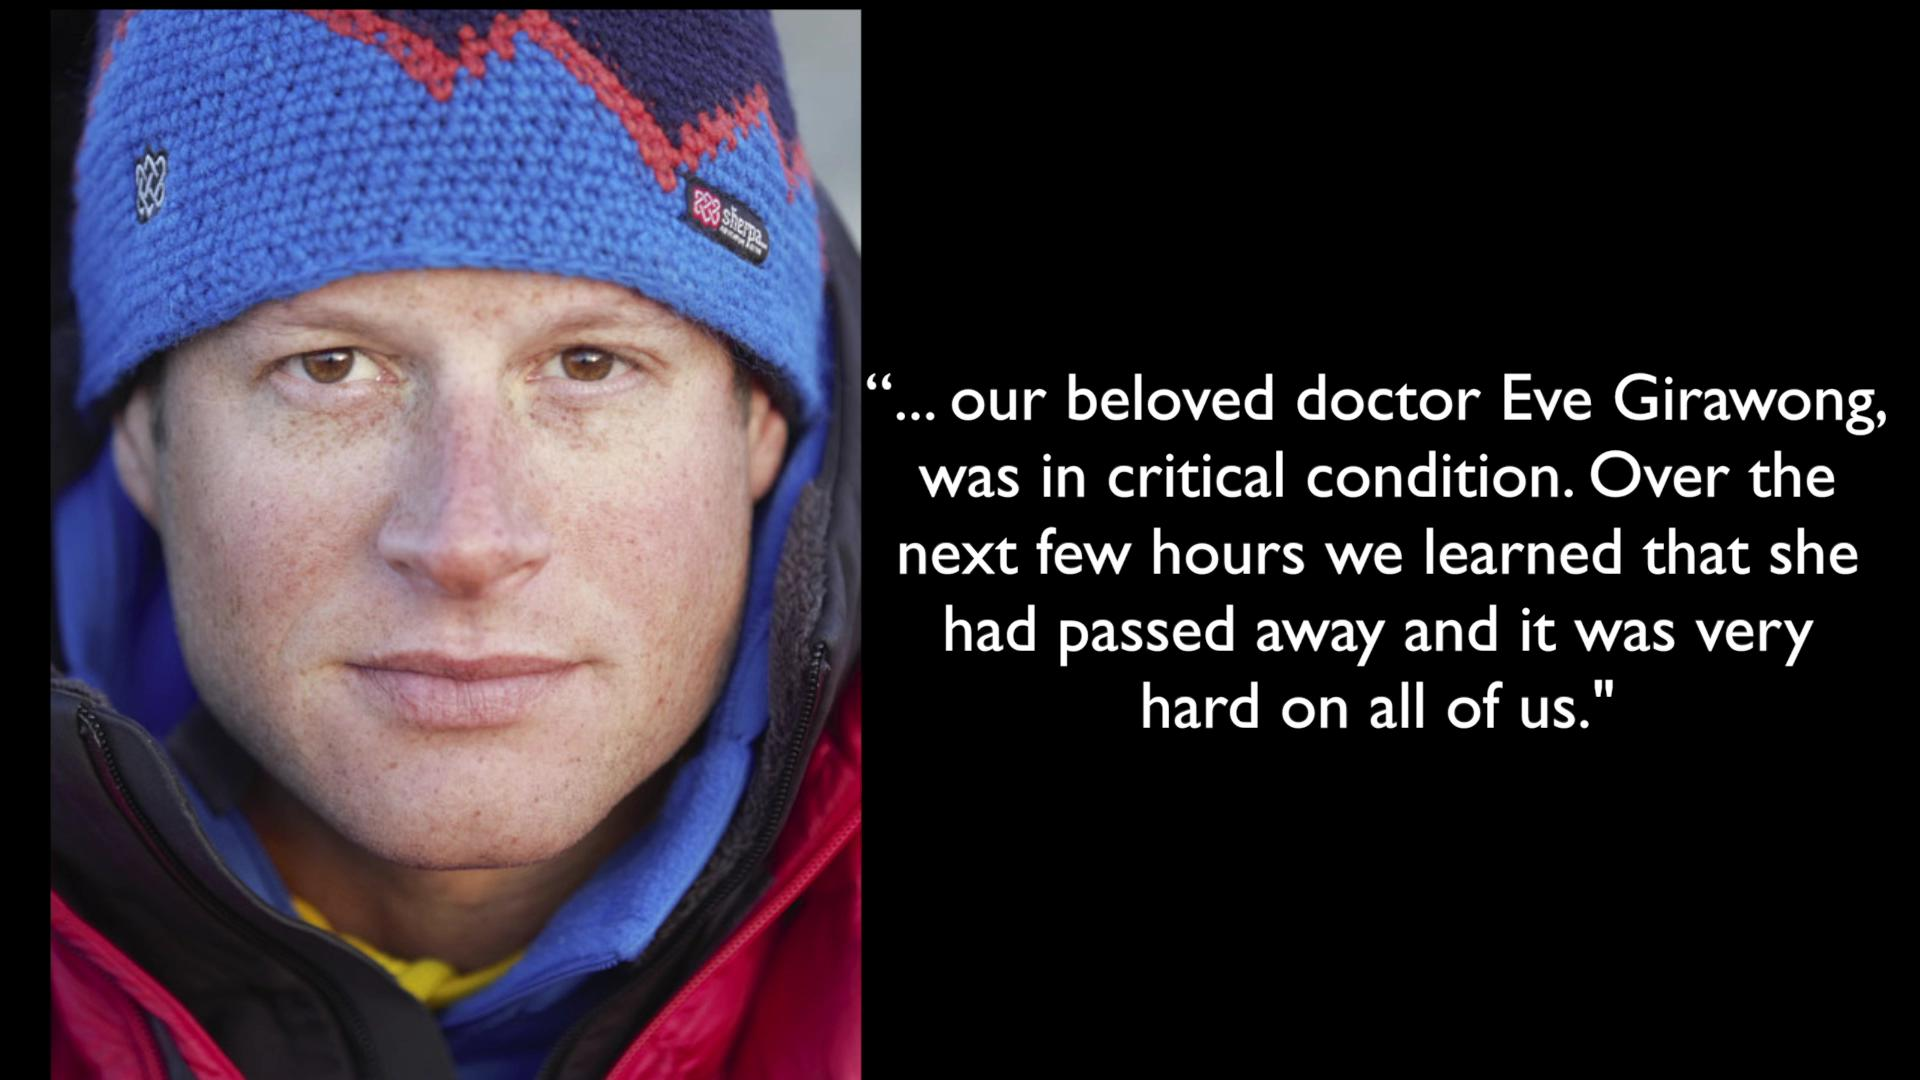 Mount Everest avalanche survivor describes tragedy